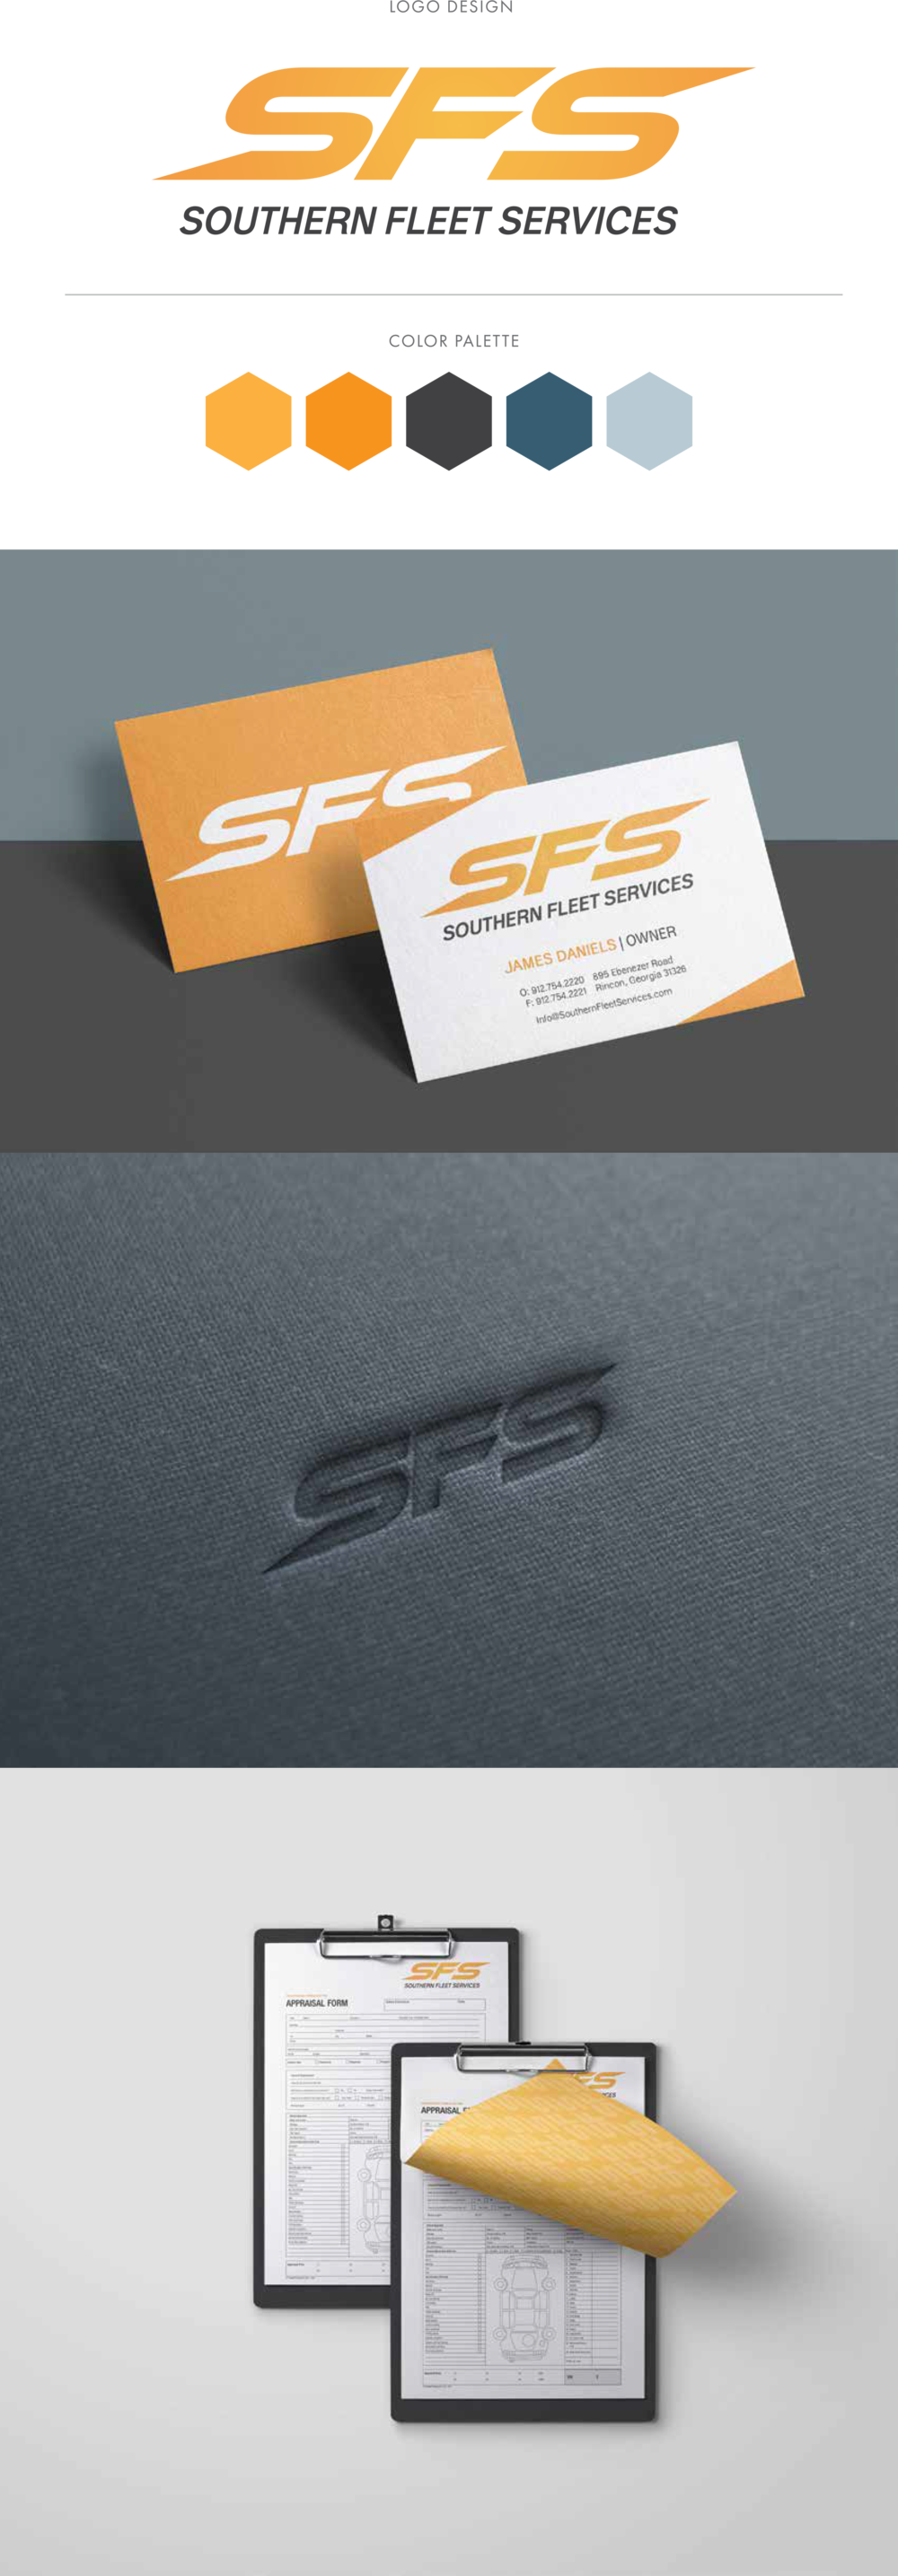 Original mockups and branding board before the logo was finalized, in order to show the client different applications of the logo for better judgment and review.